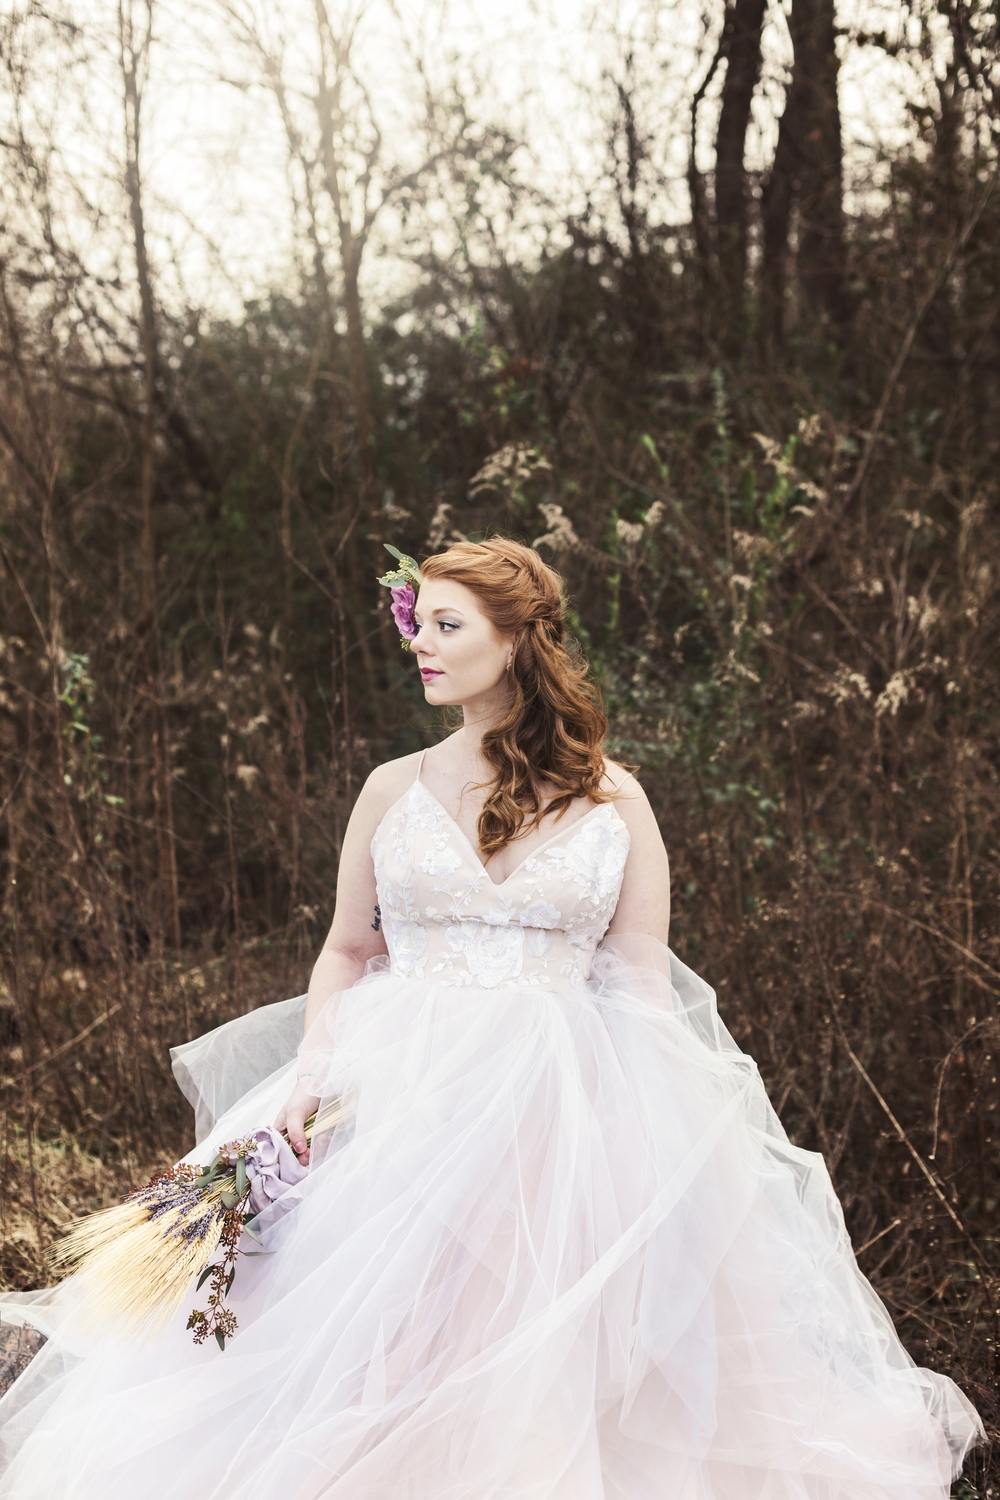 Sara + Matt + Ella _Give Back Bride_Styled Shoot _K. Stoddard Photography012.jpg